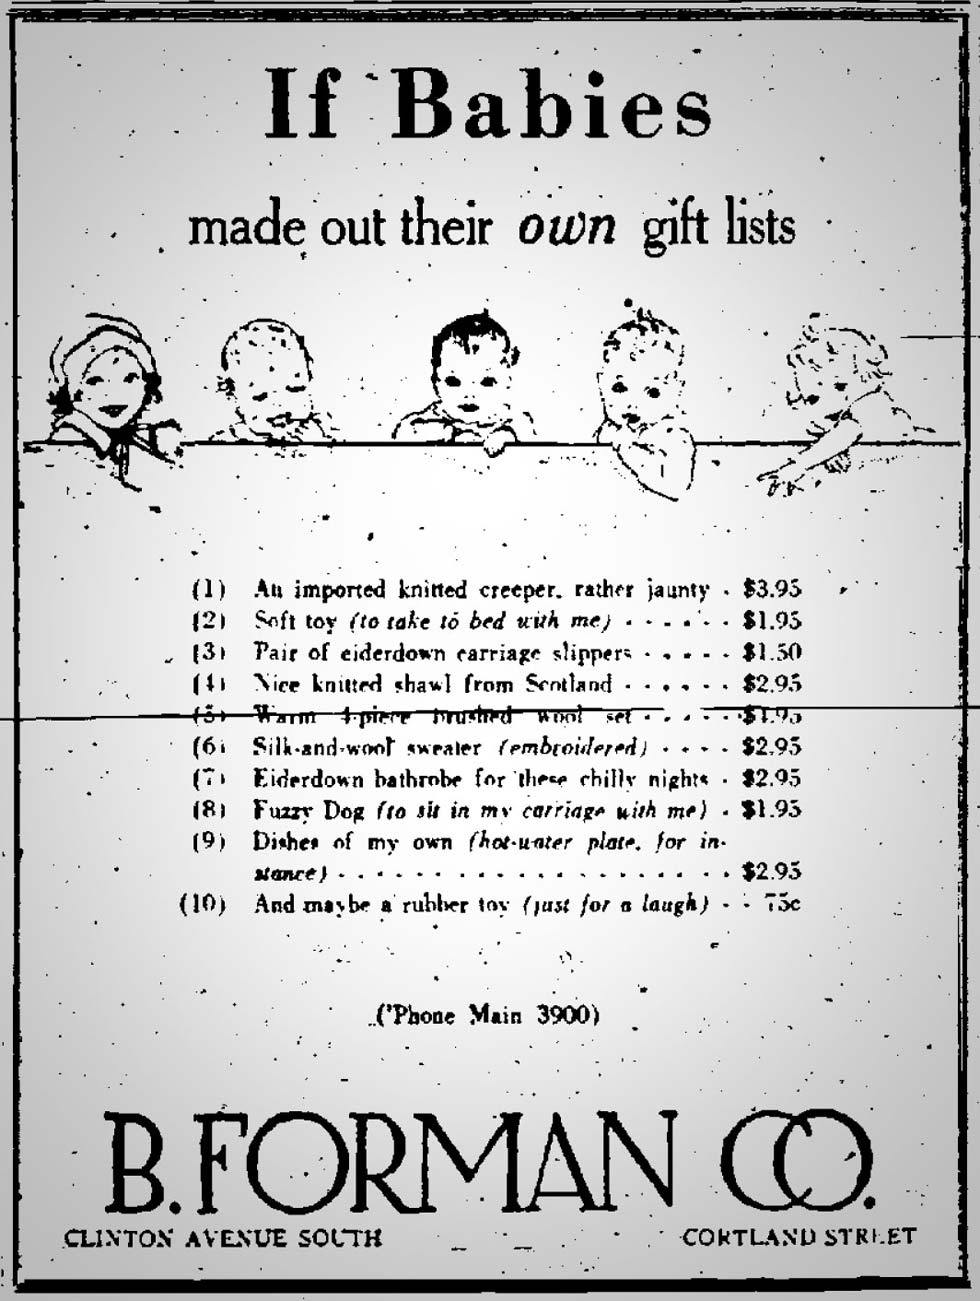 B. Forman Co. advertisment in the Democrat and Chronicle, December 20, 1929. [SOURCE: FultonHistory.com]